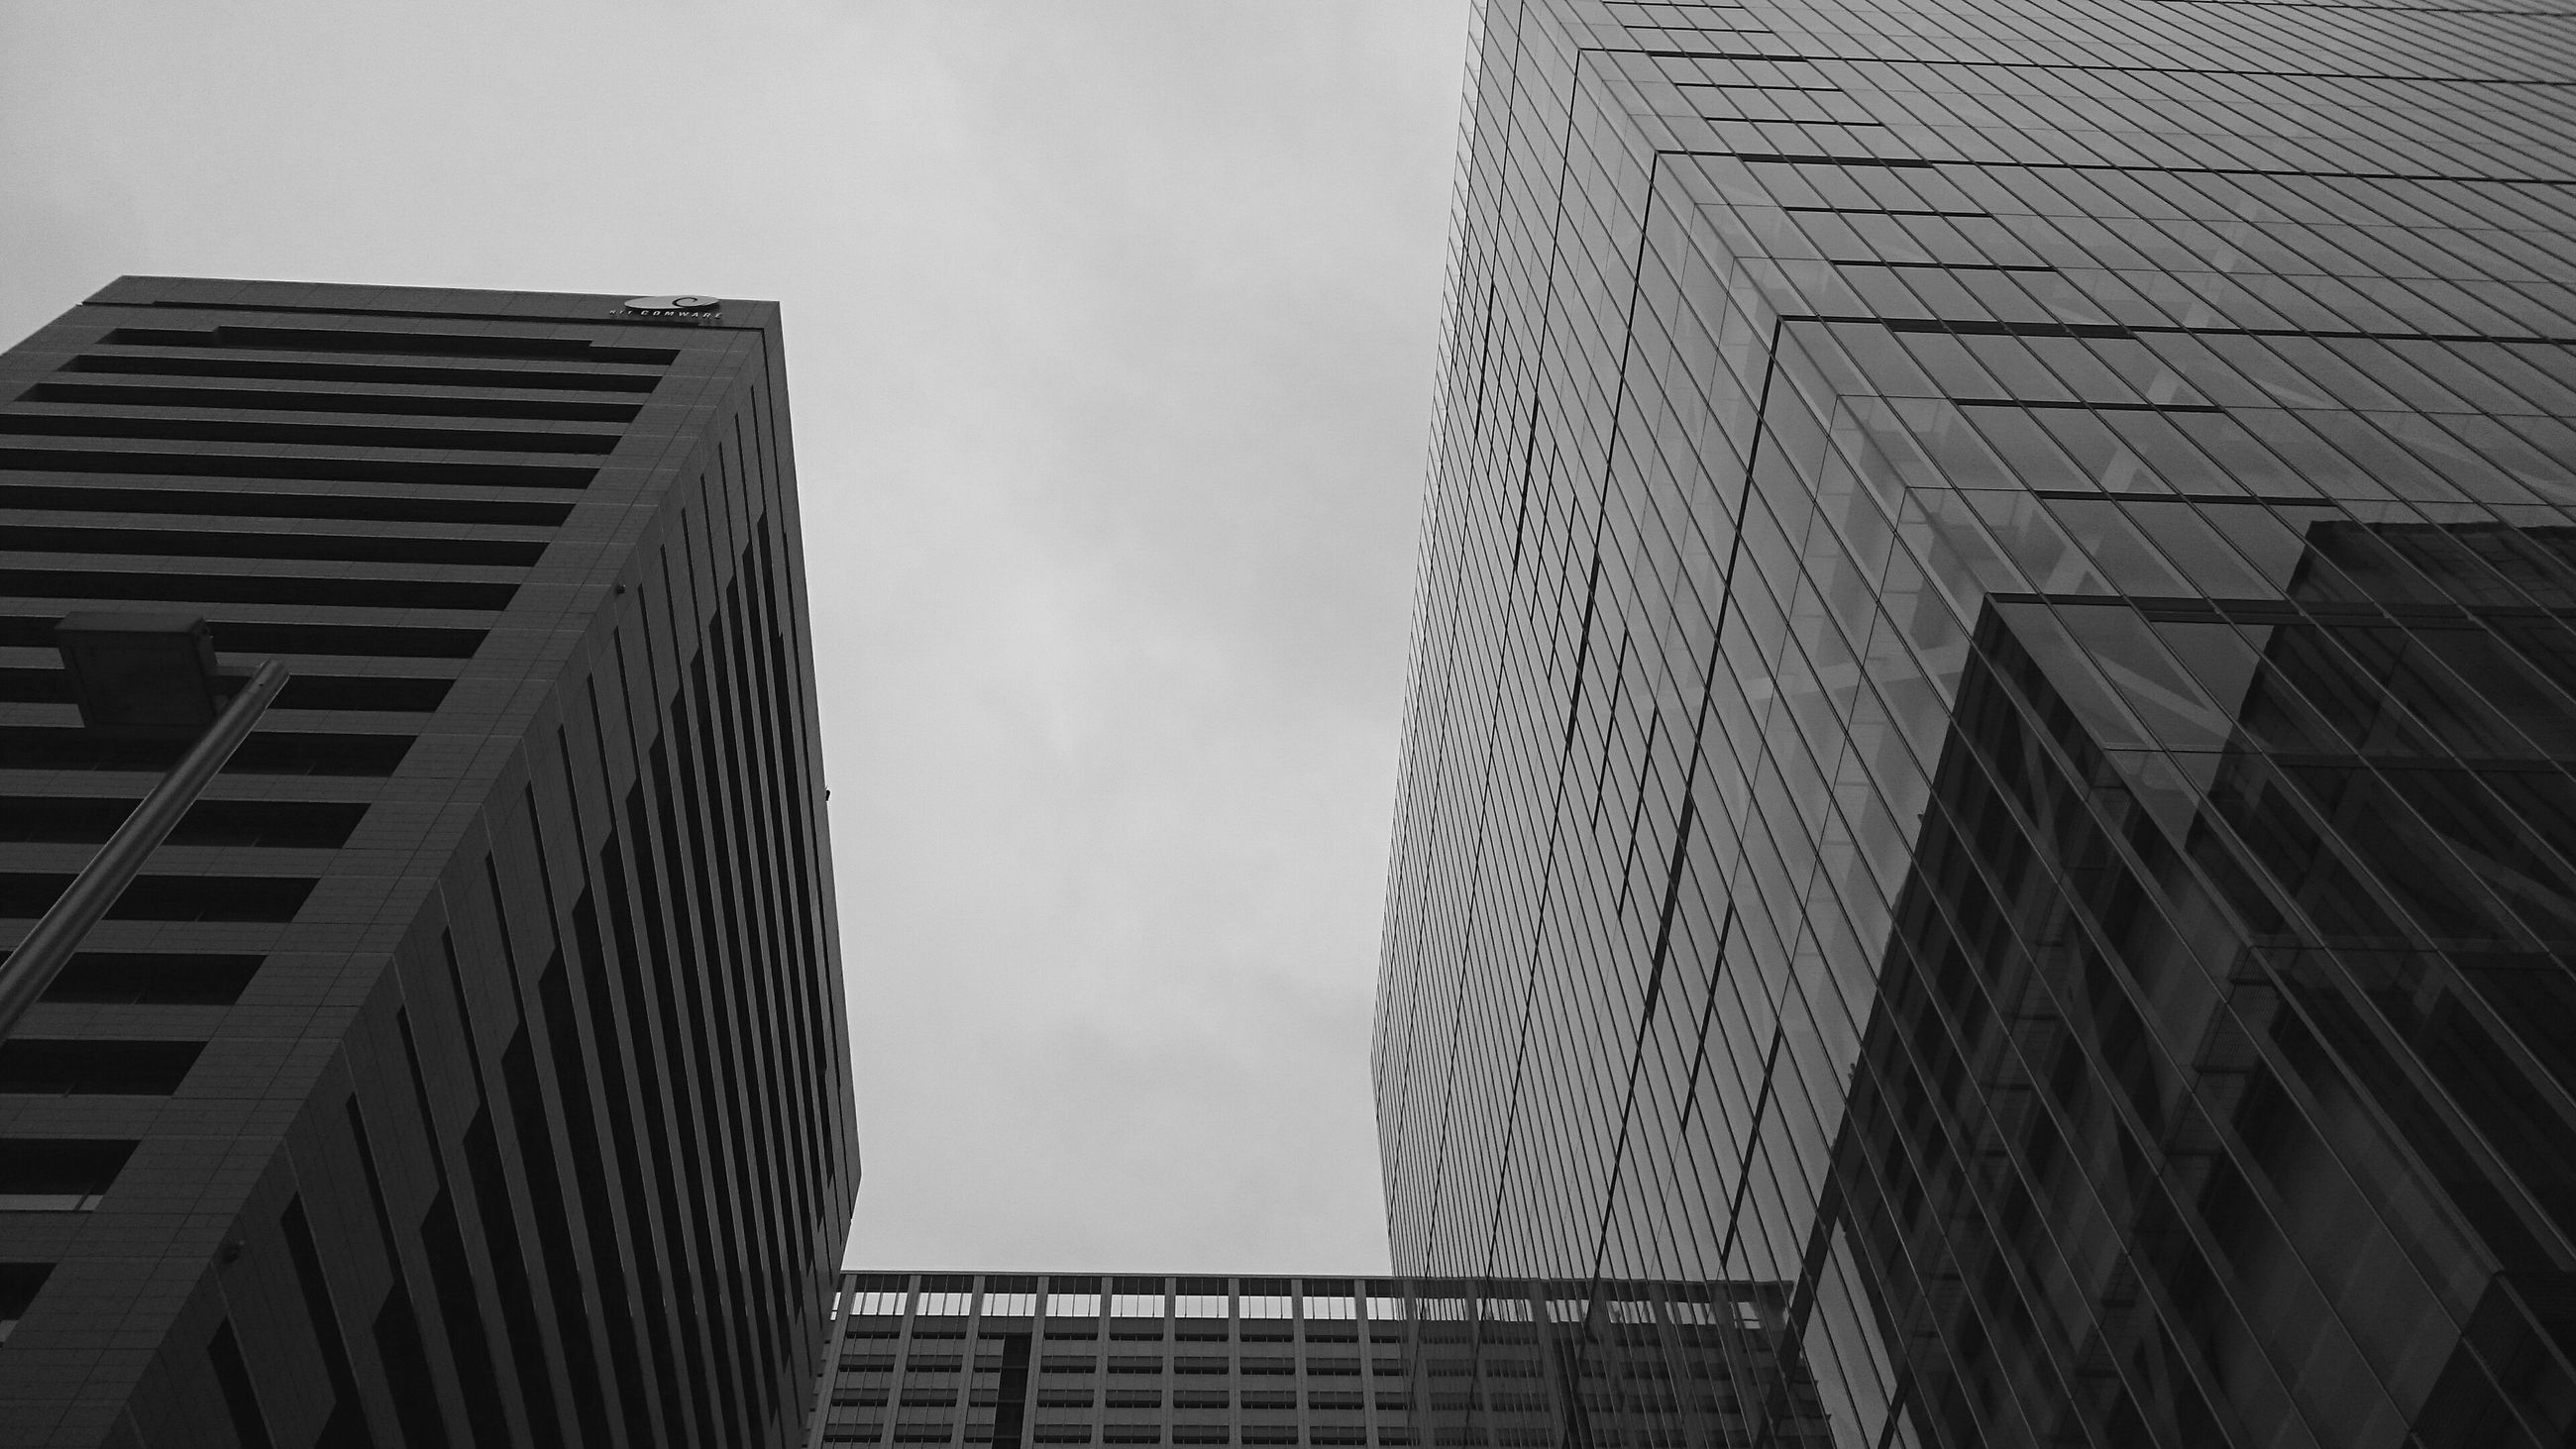 architecture, built structure, low angle view, building exterior, city, building, sky, office building, modern, tall - high, skyscraper, tower, outdoors, day, no people, window, glass - material, residential building, city life, directly below